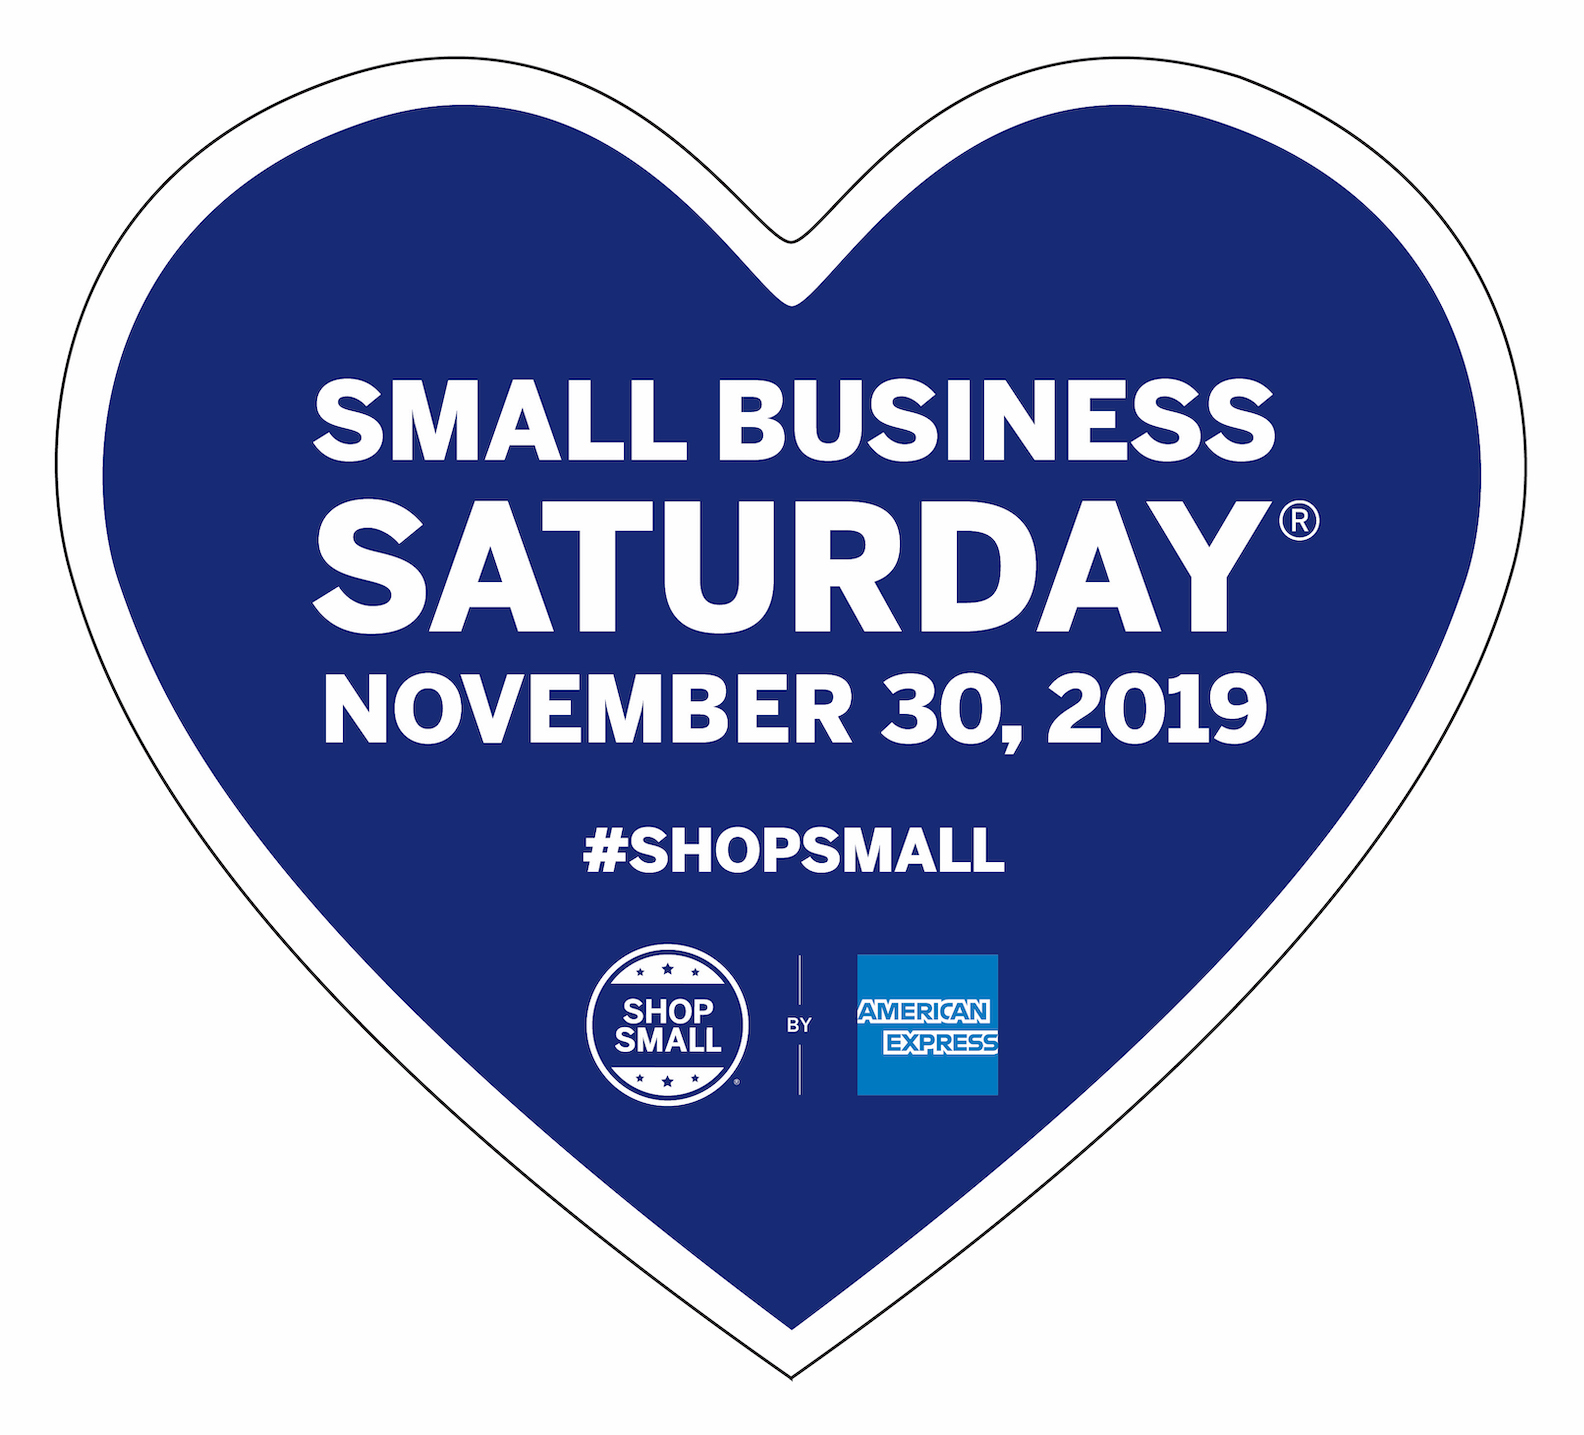 Image courtesy of American Express/Small Business Saturday